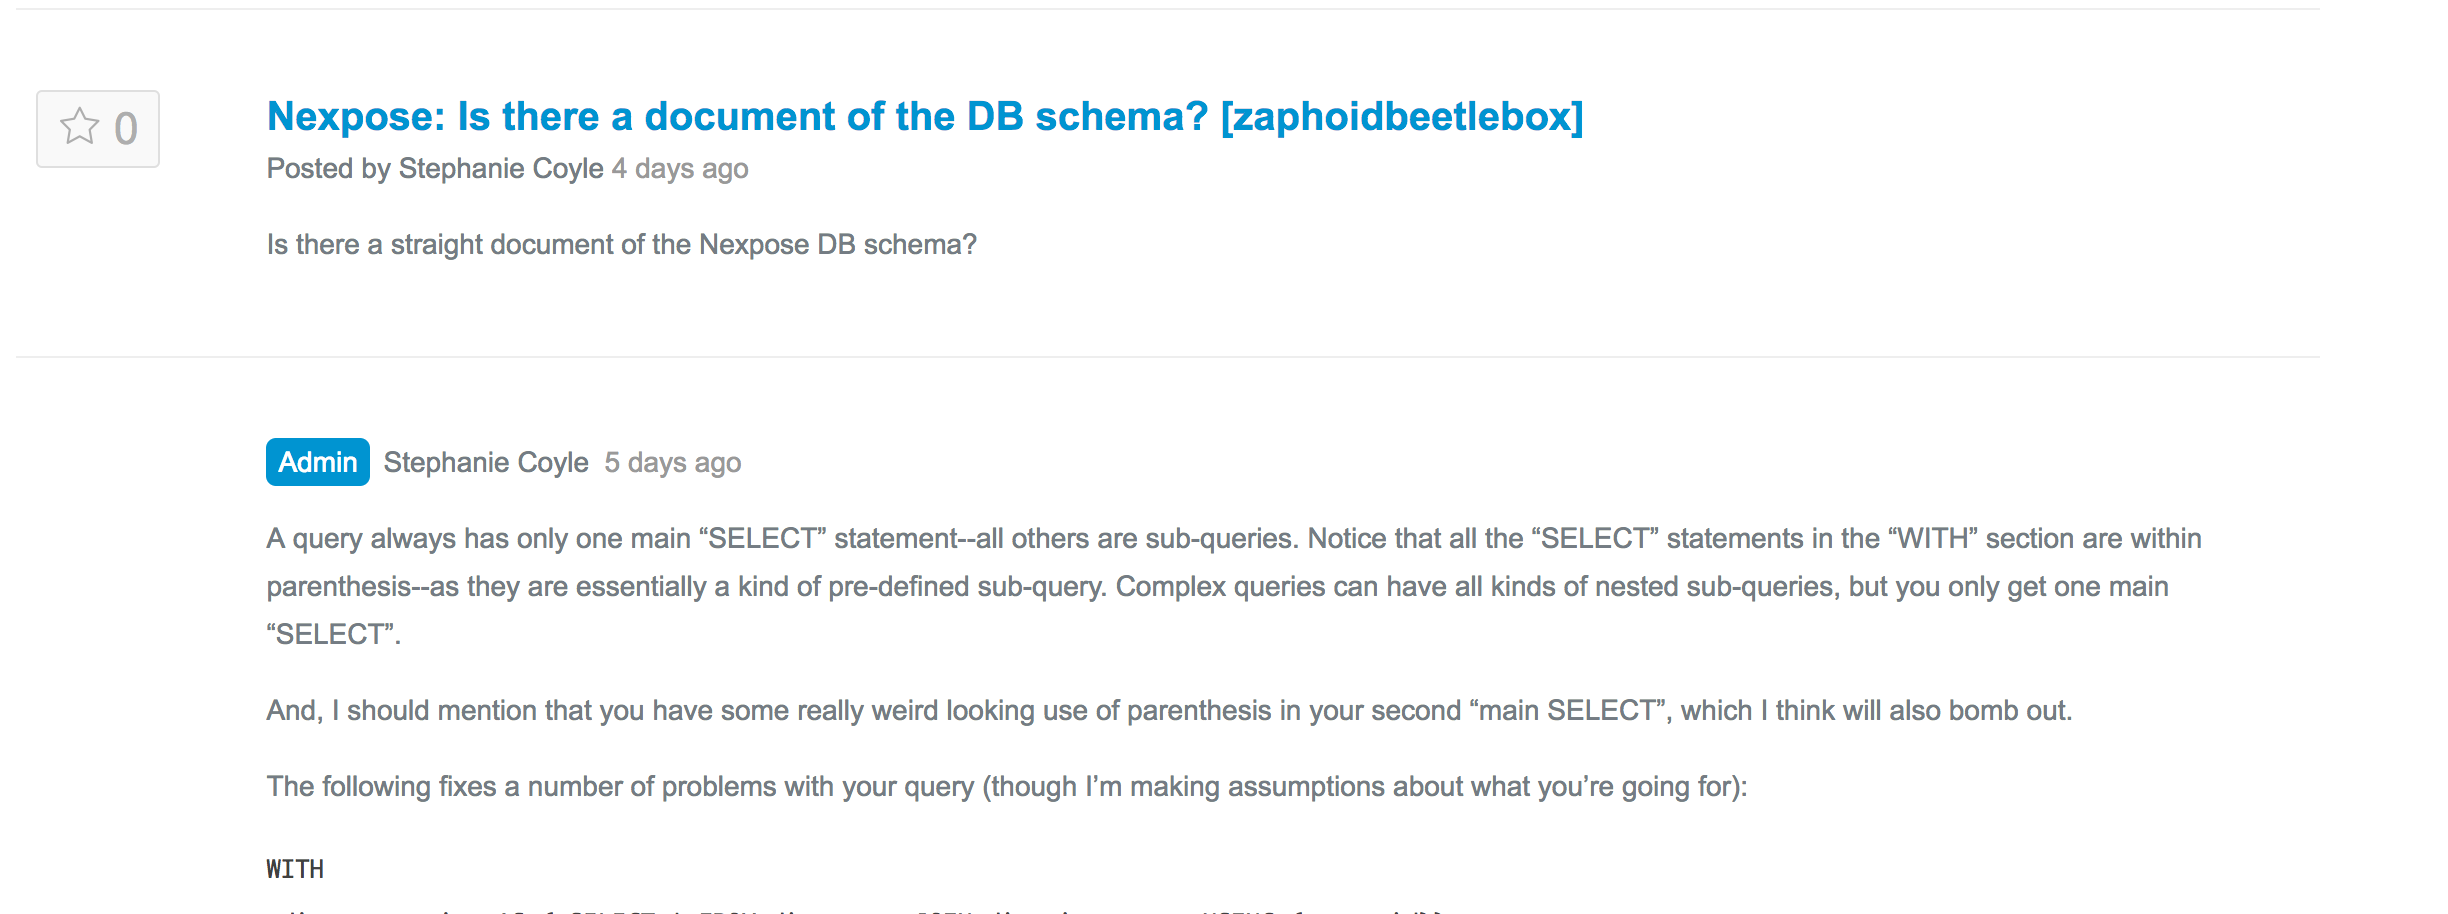 Nexpose Is There A Document Of The Db Schema Zaphoidbeetlebox